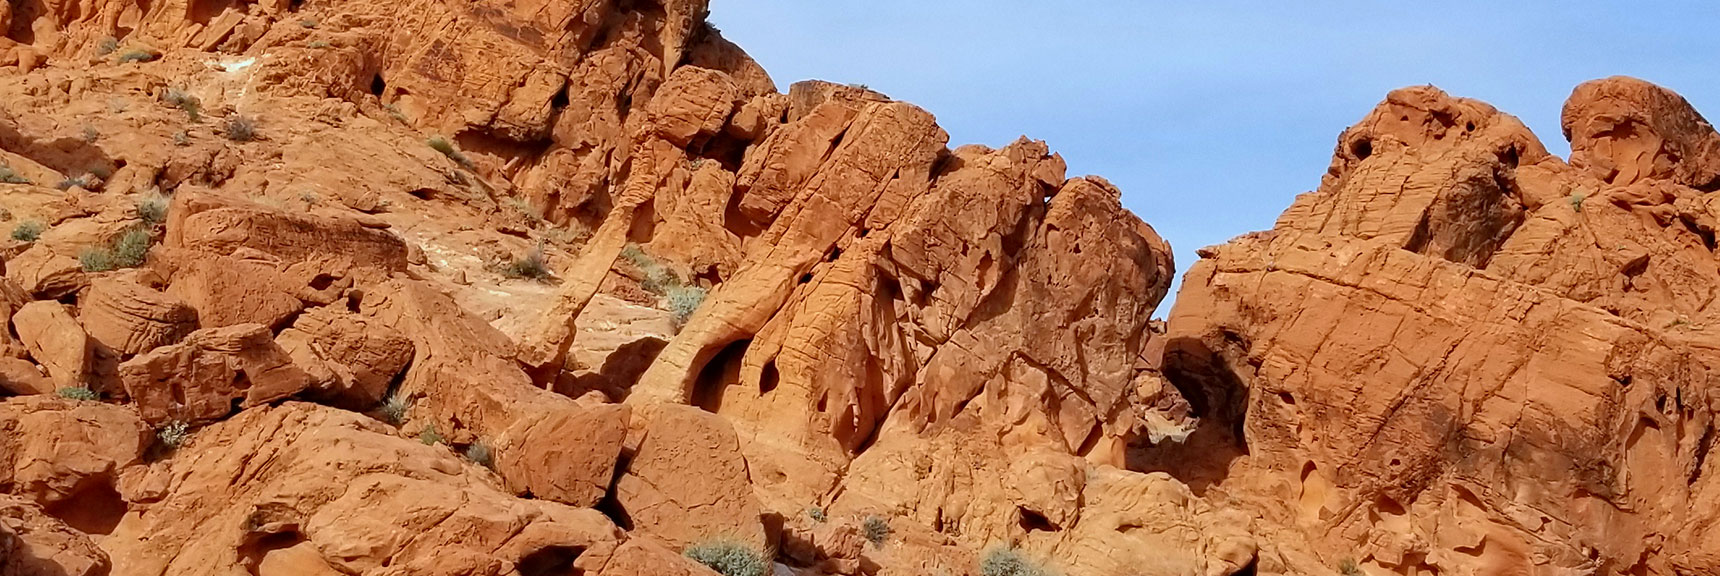 Elephant Rock Loop in Valley of Fire State Park, Nevada